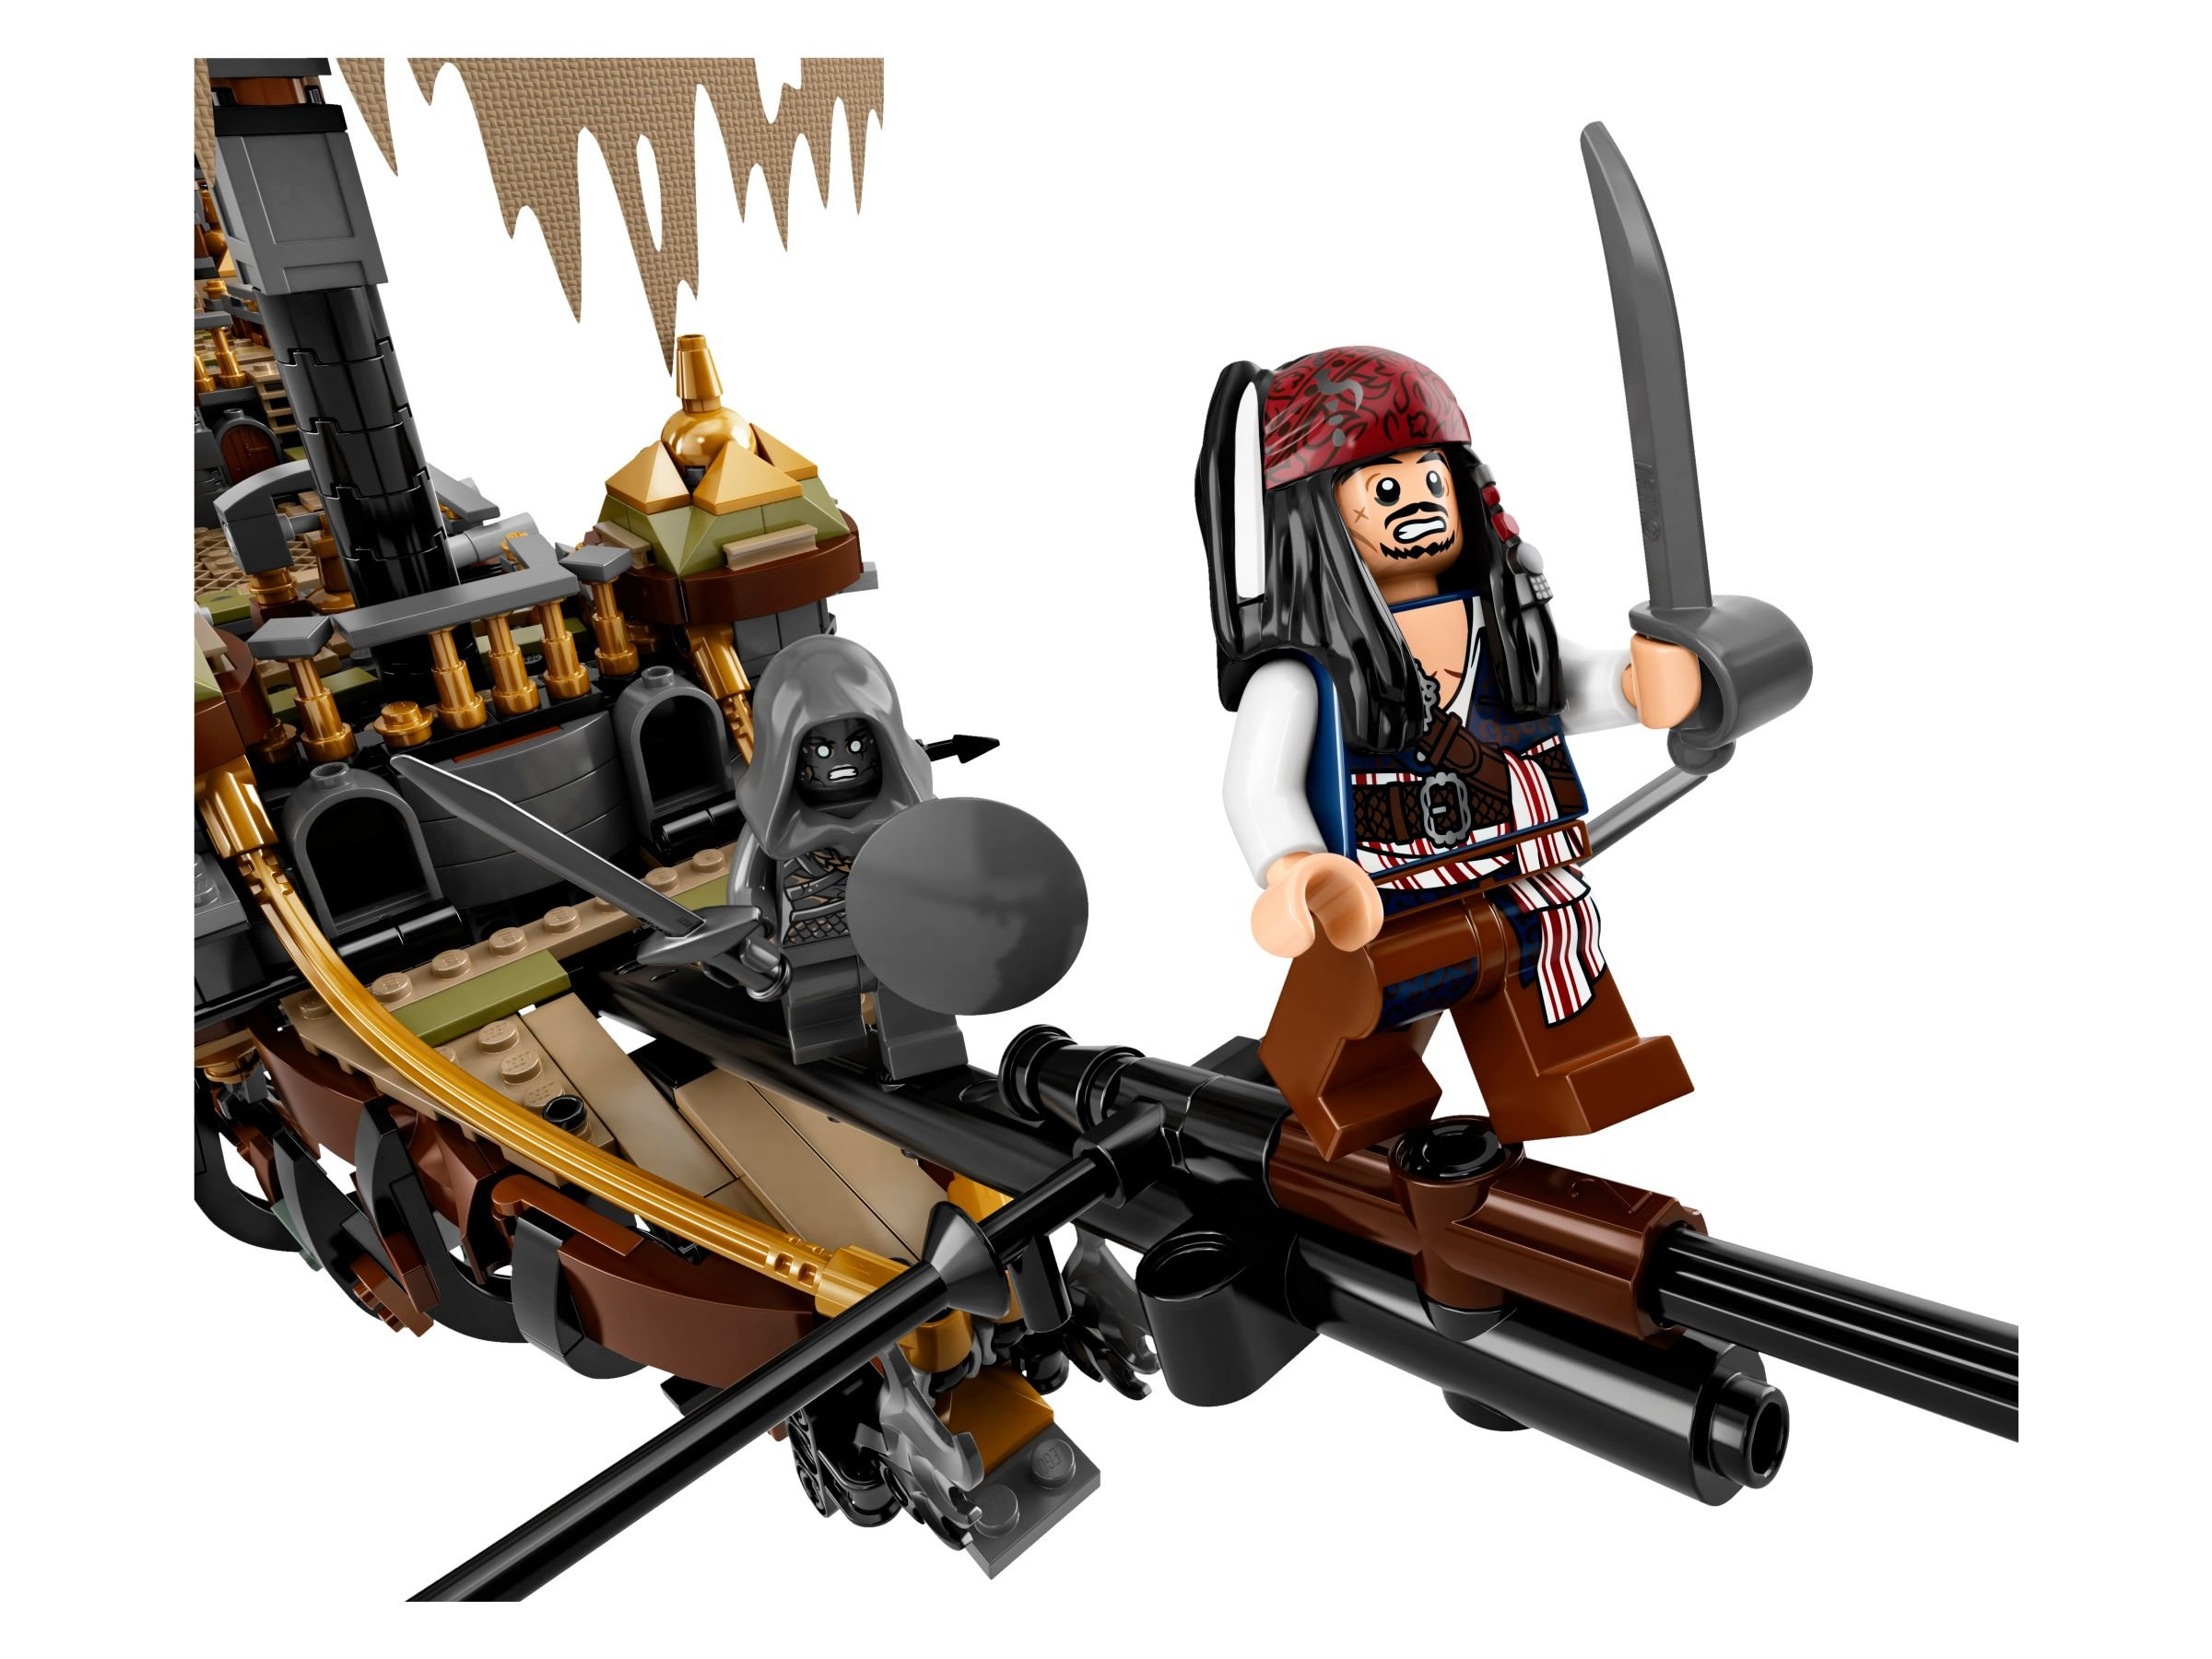 LEGO Advanced Models 71042 Silent Mary LEGO_71042_alt4_Silent_Mary.jpg